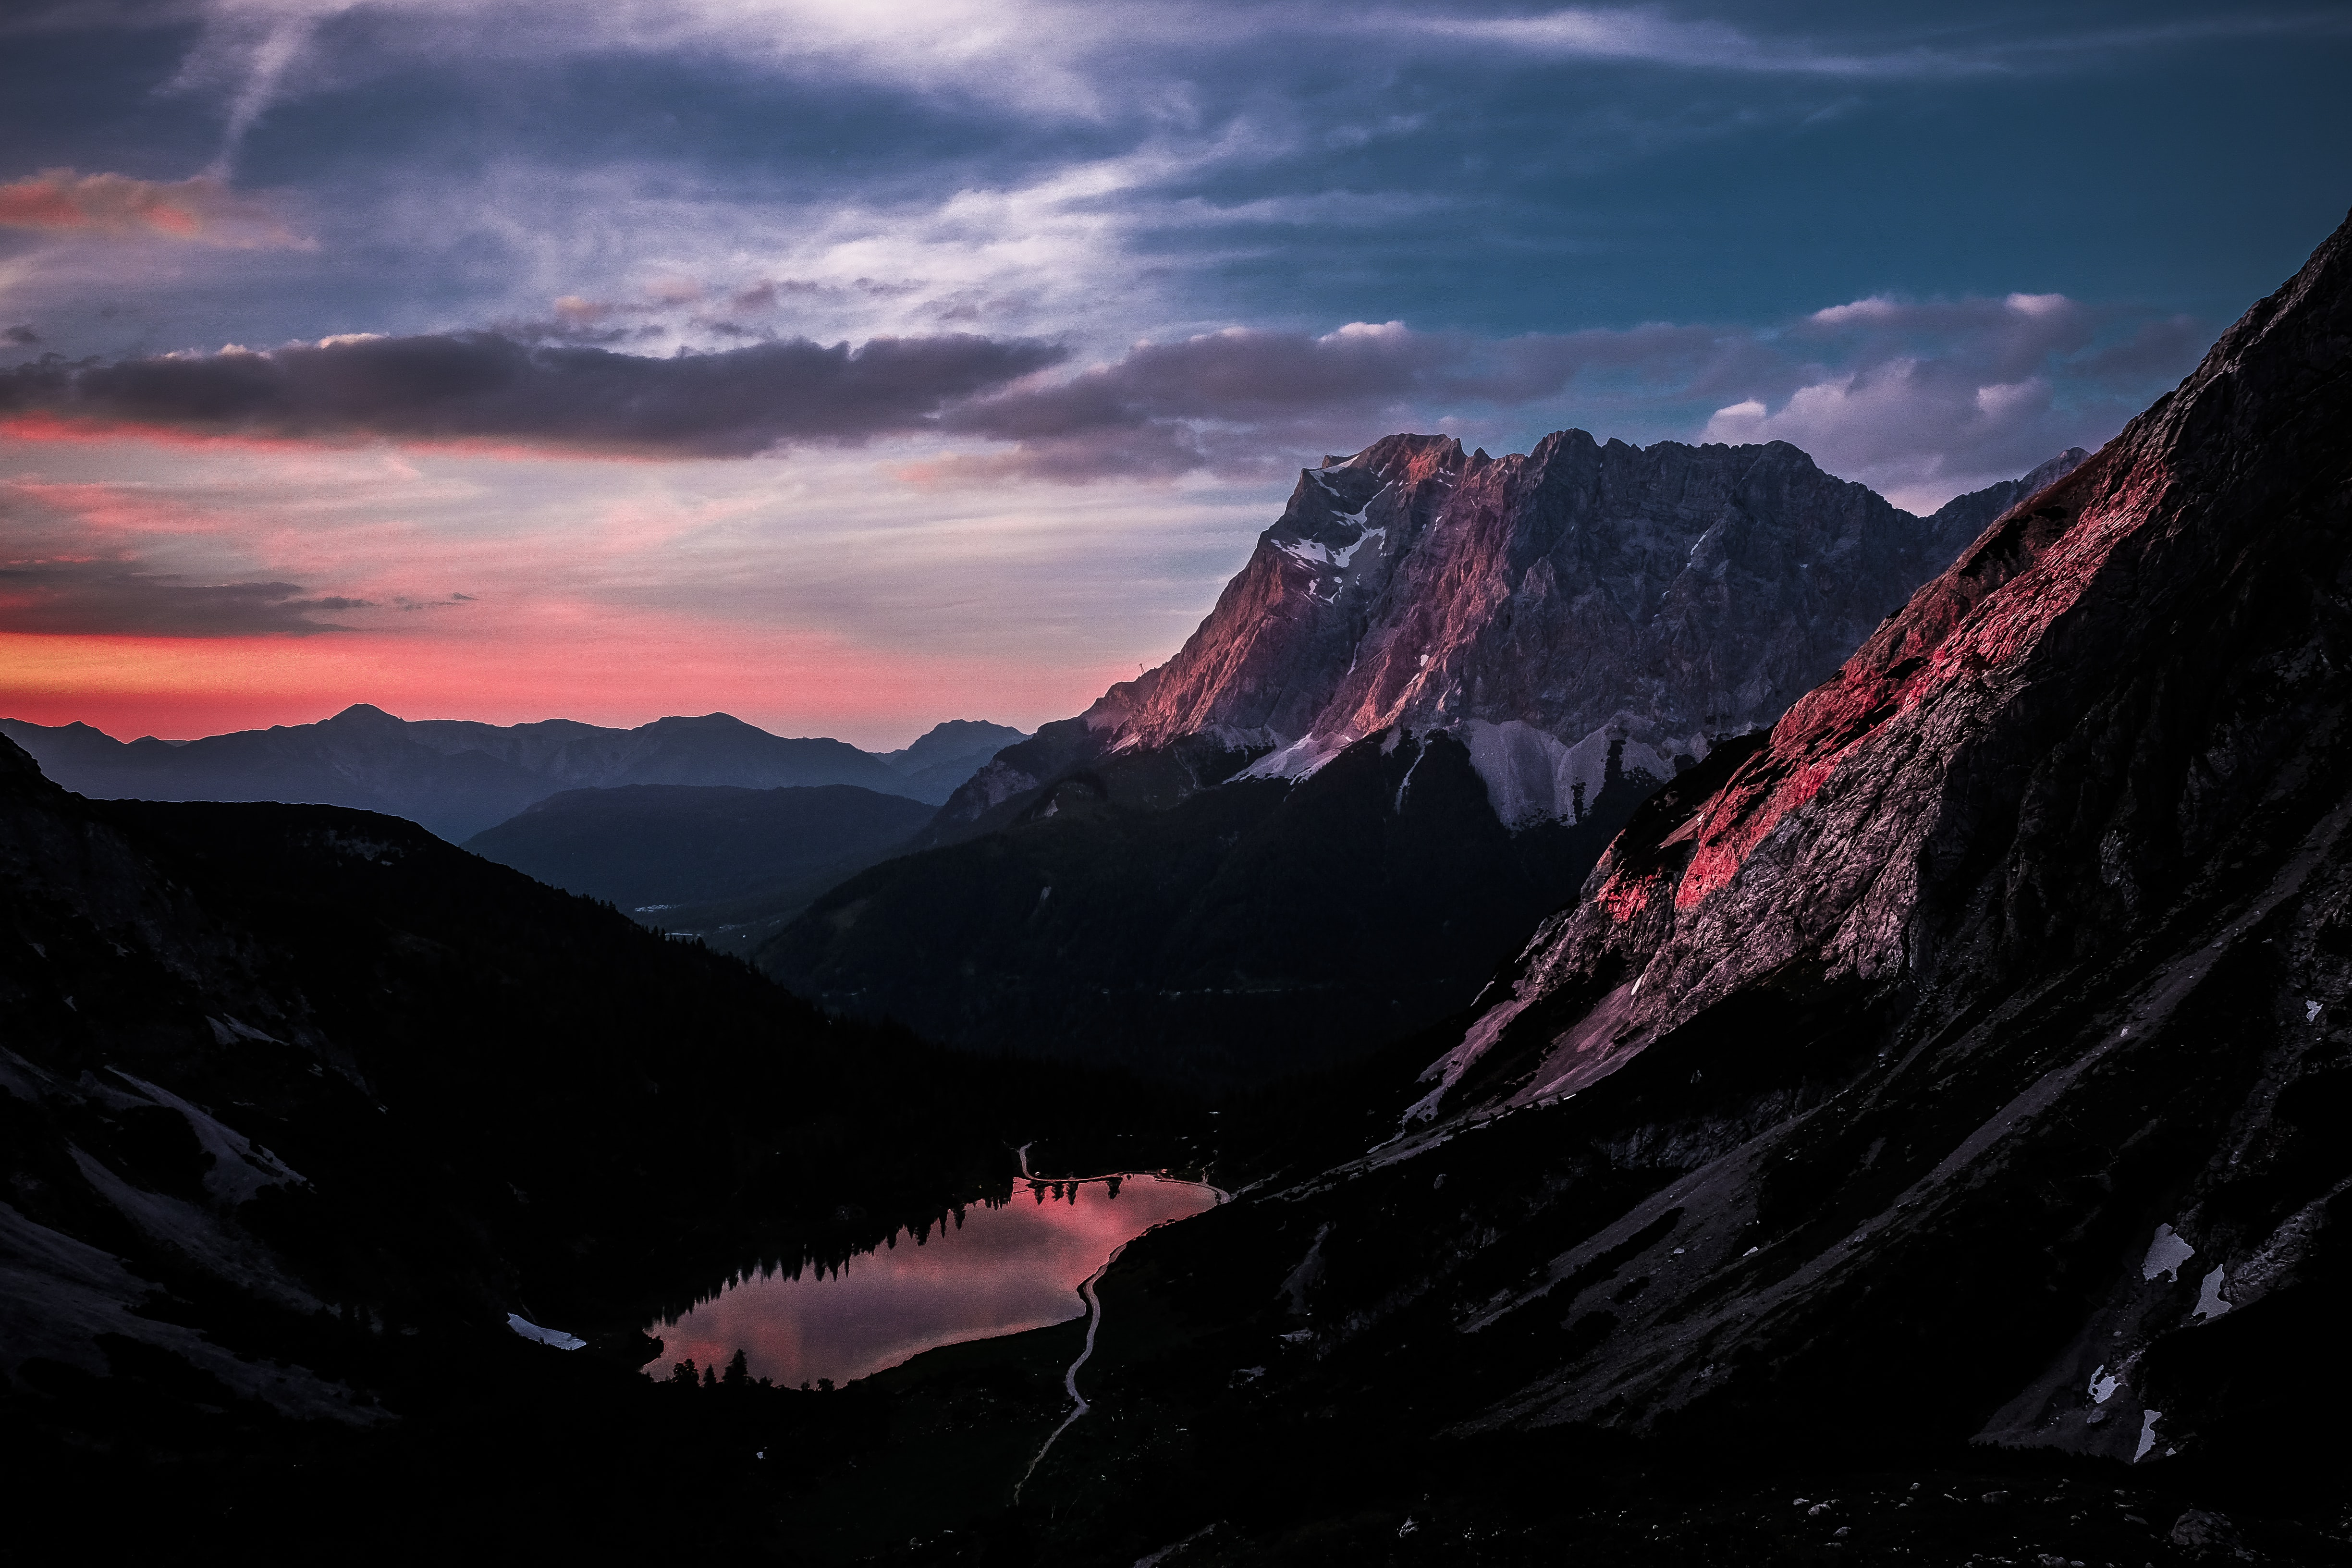 mountains with fog under blue and orange sky